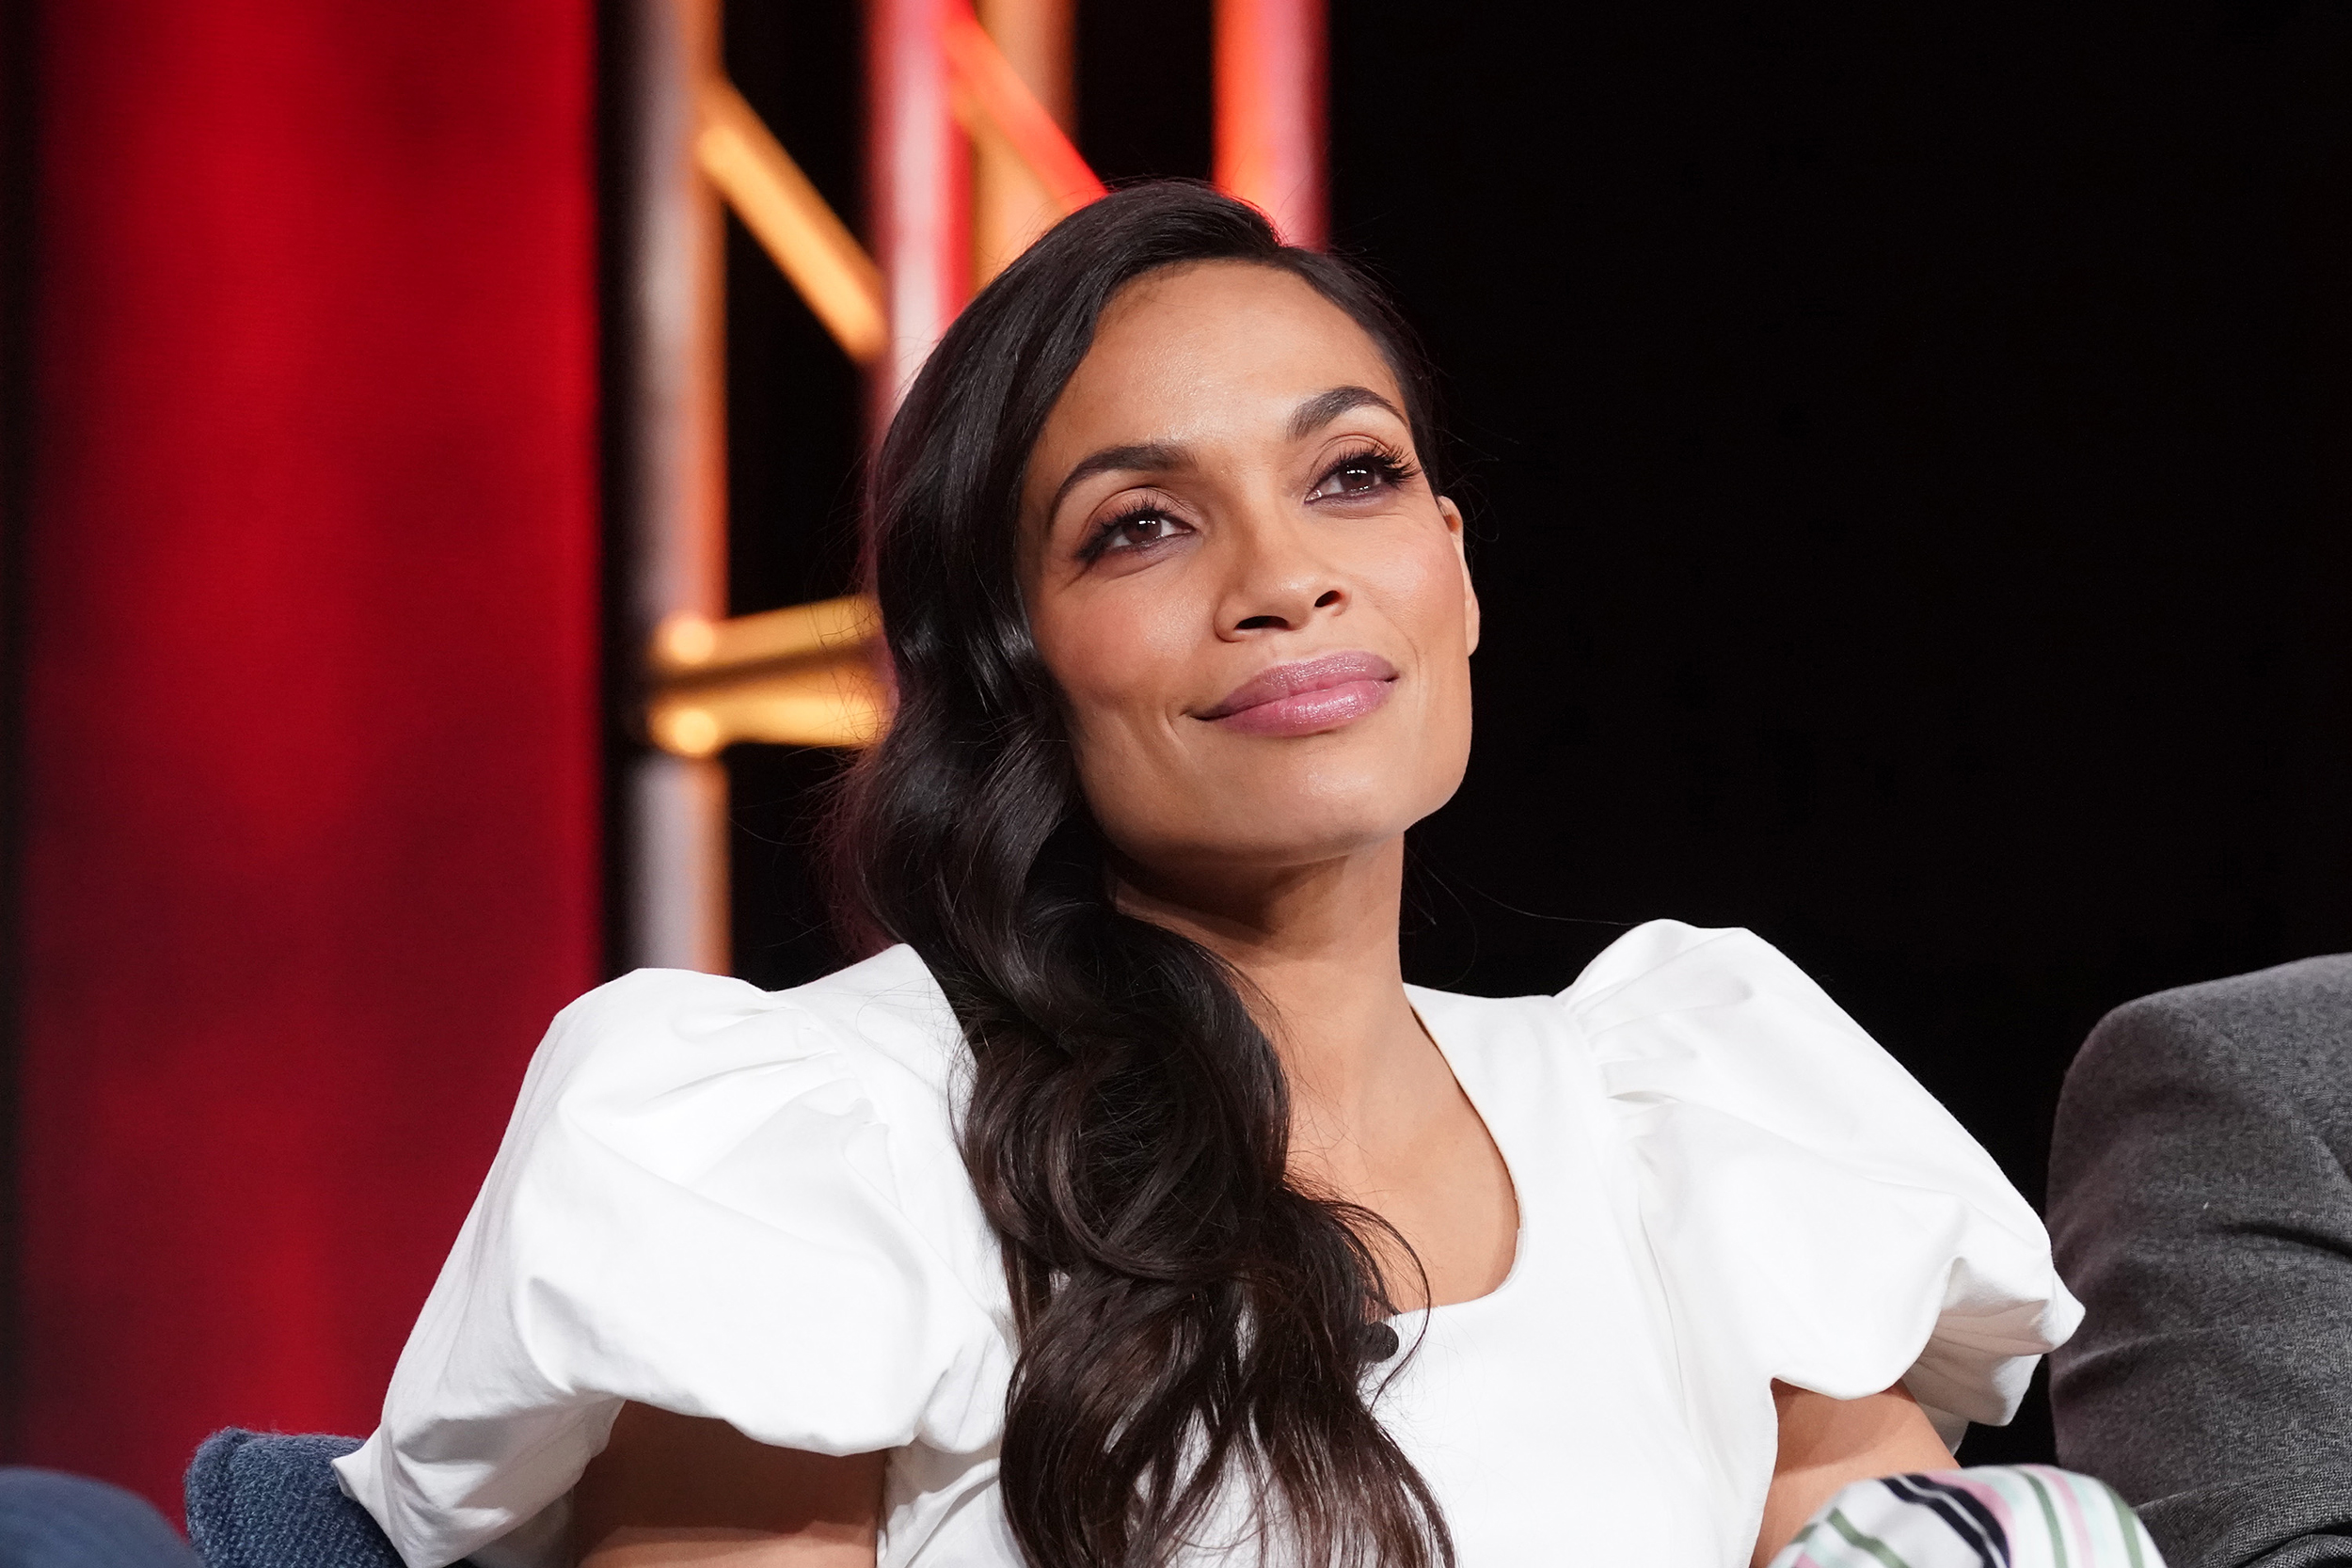 Rosario Dawson officially comes out as LGBTQ in latest interview